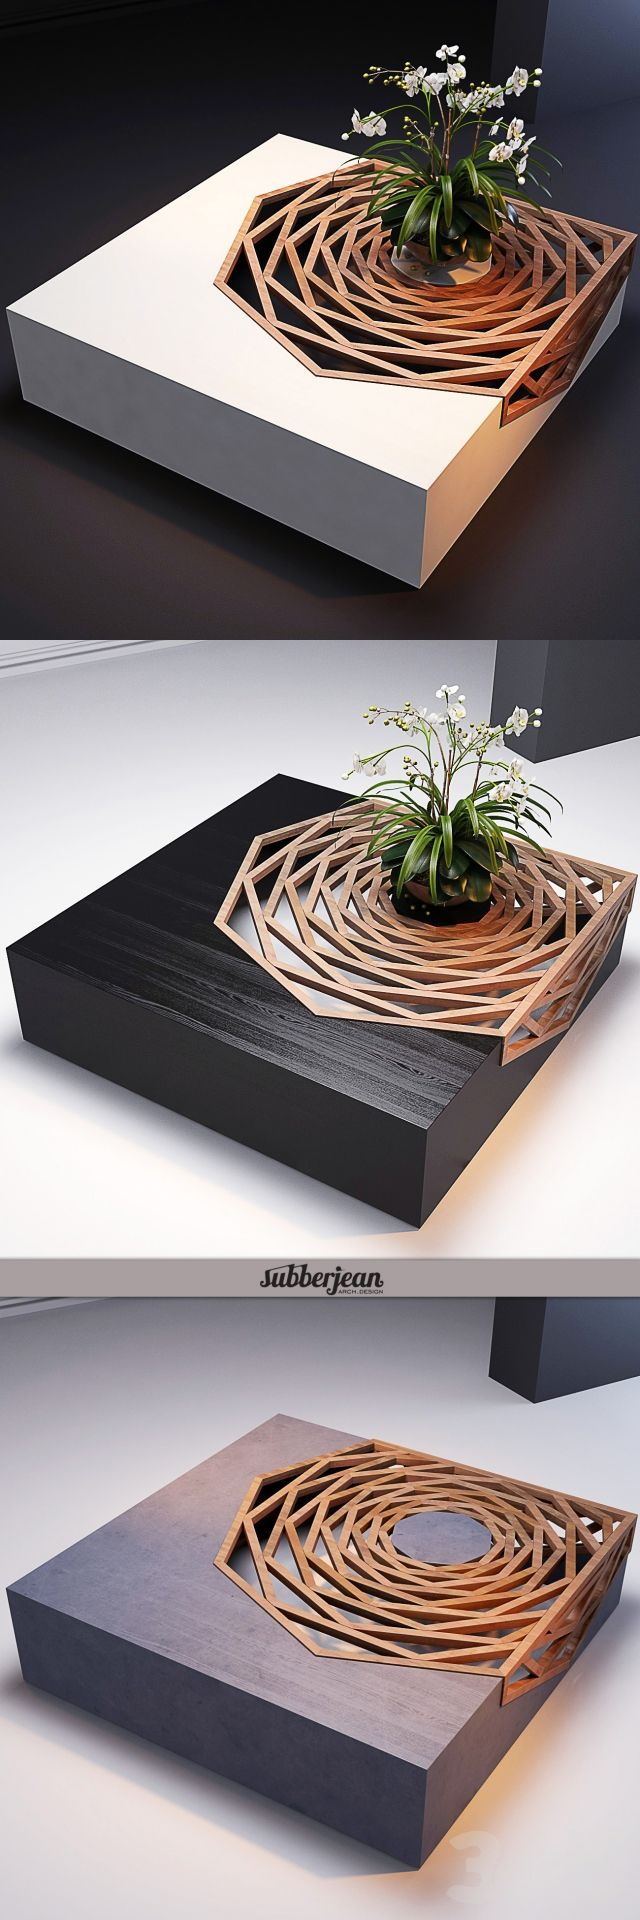 Gorgeous Design Wood Coffee Table Architecture Interiors